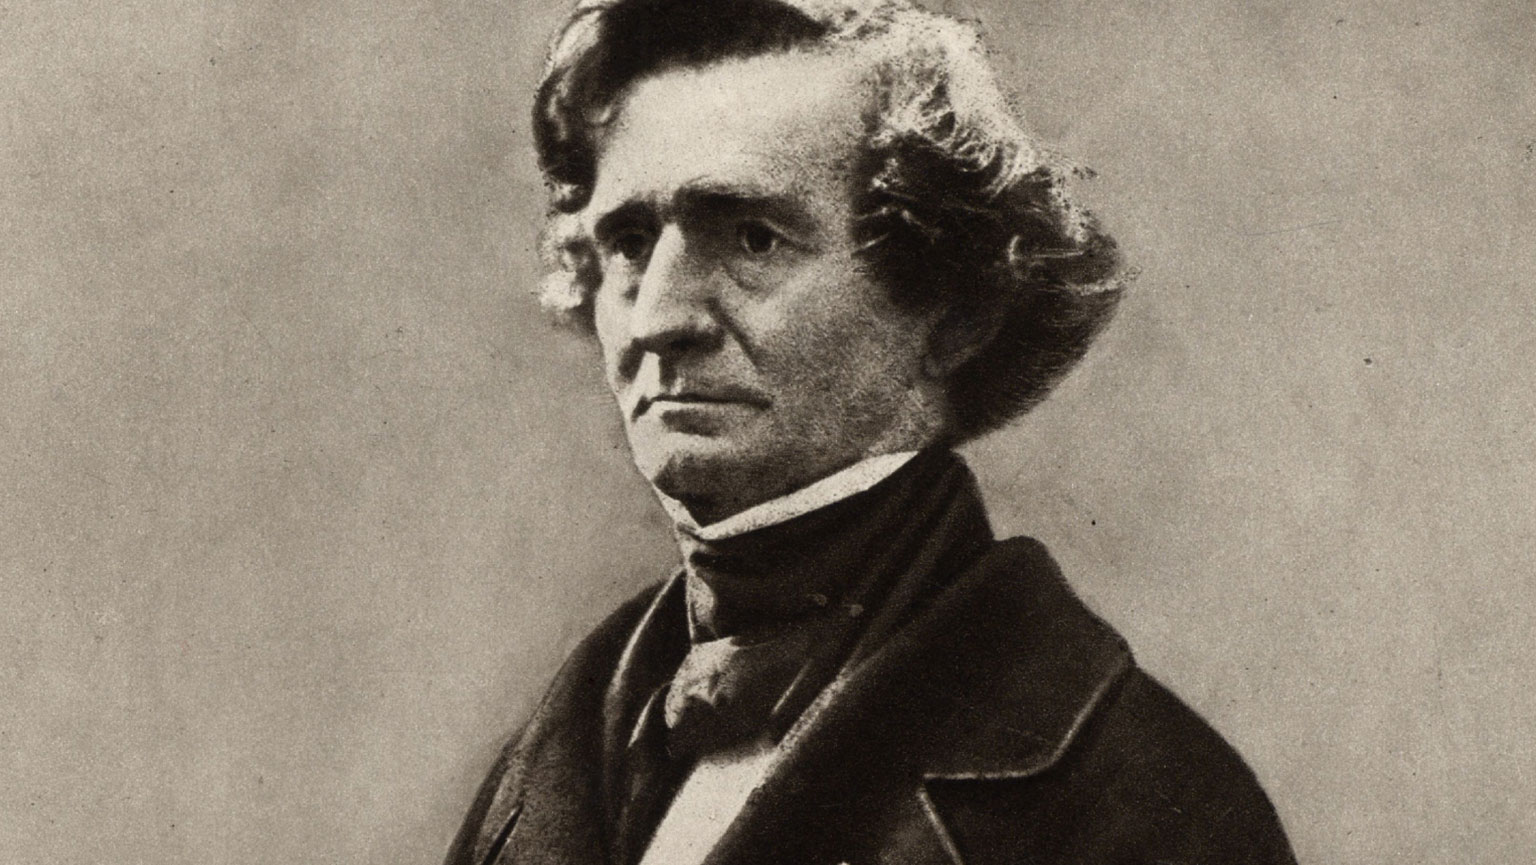 The Program Symphony—Berlioz's Symphonie fantastique, Part 1